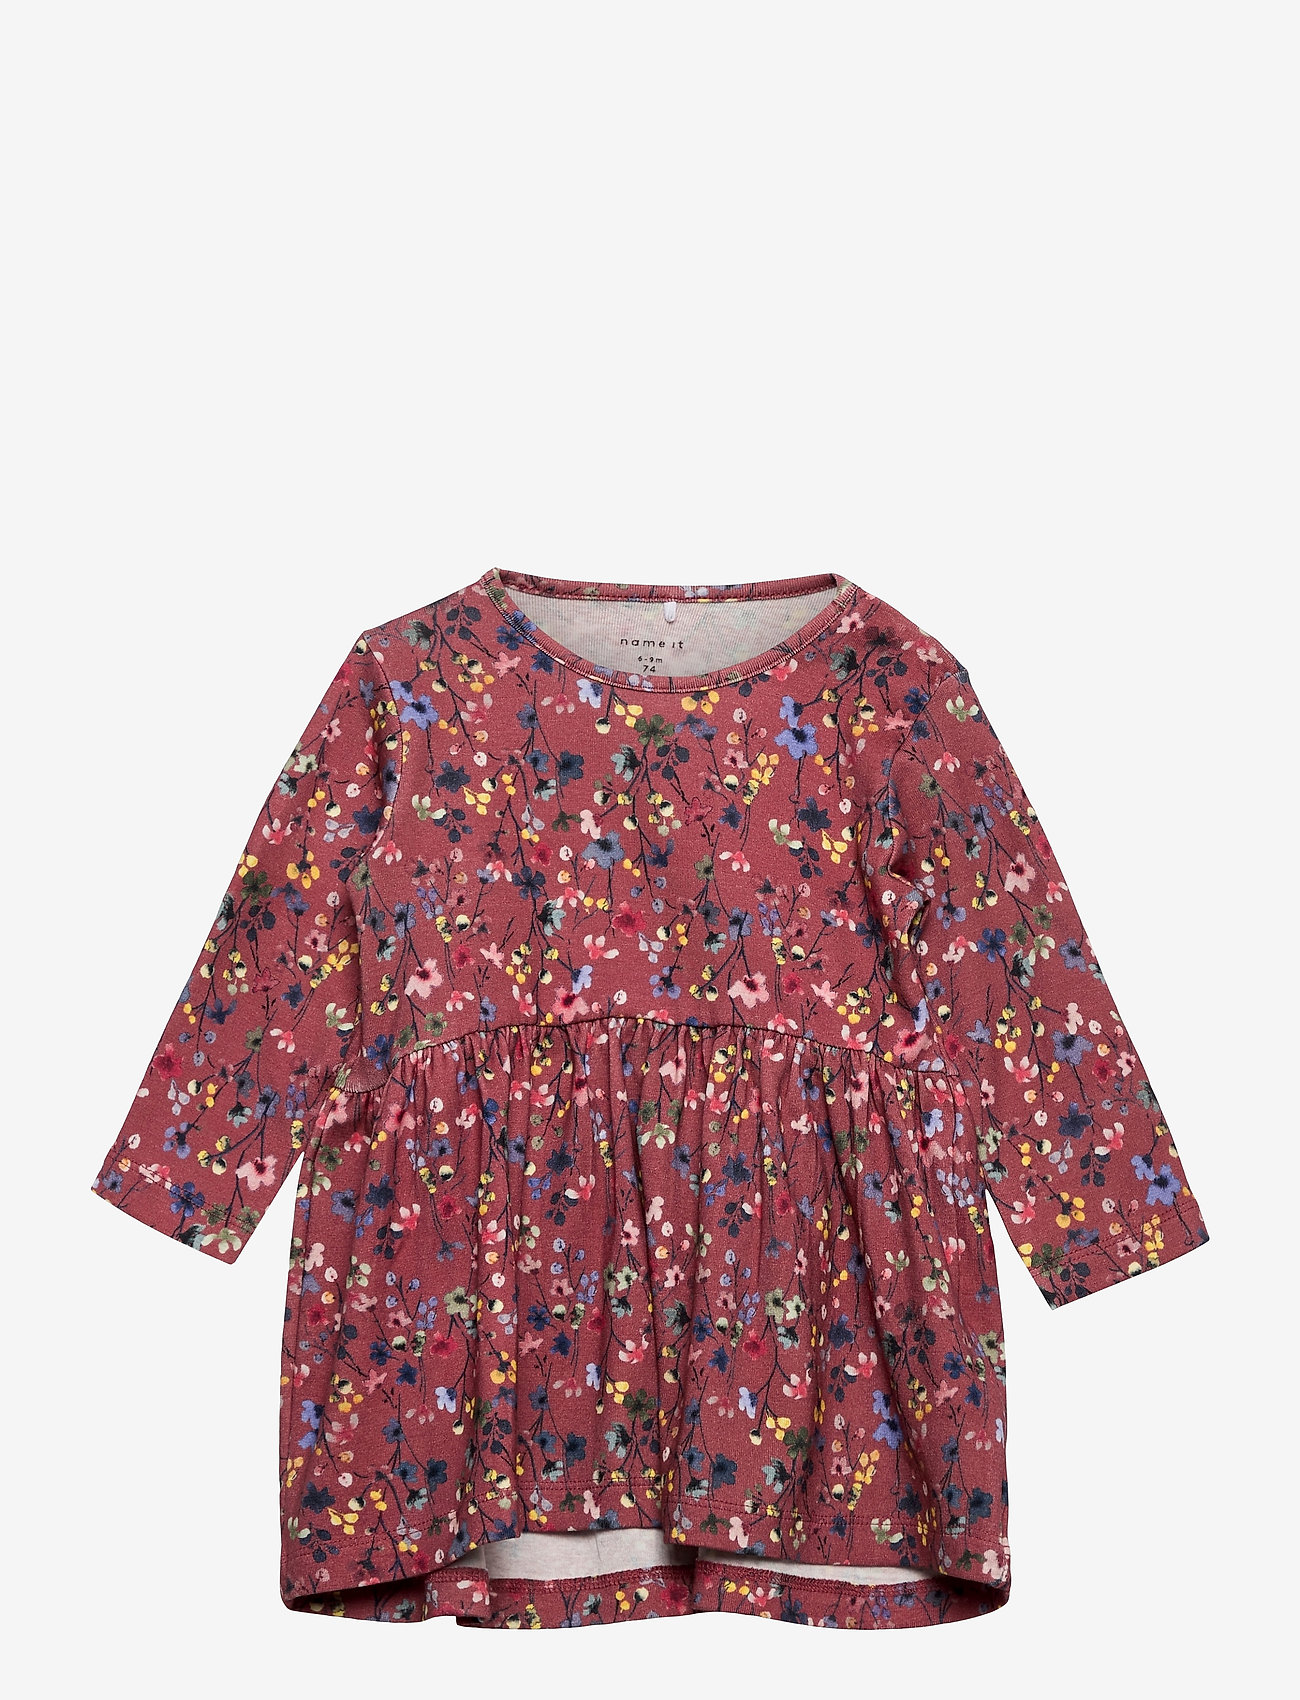 name it - NBFTESSIE LS DRESS - kleider - withered rose - 0